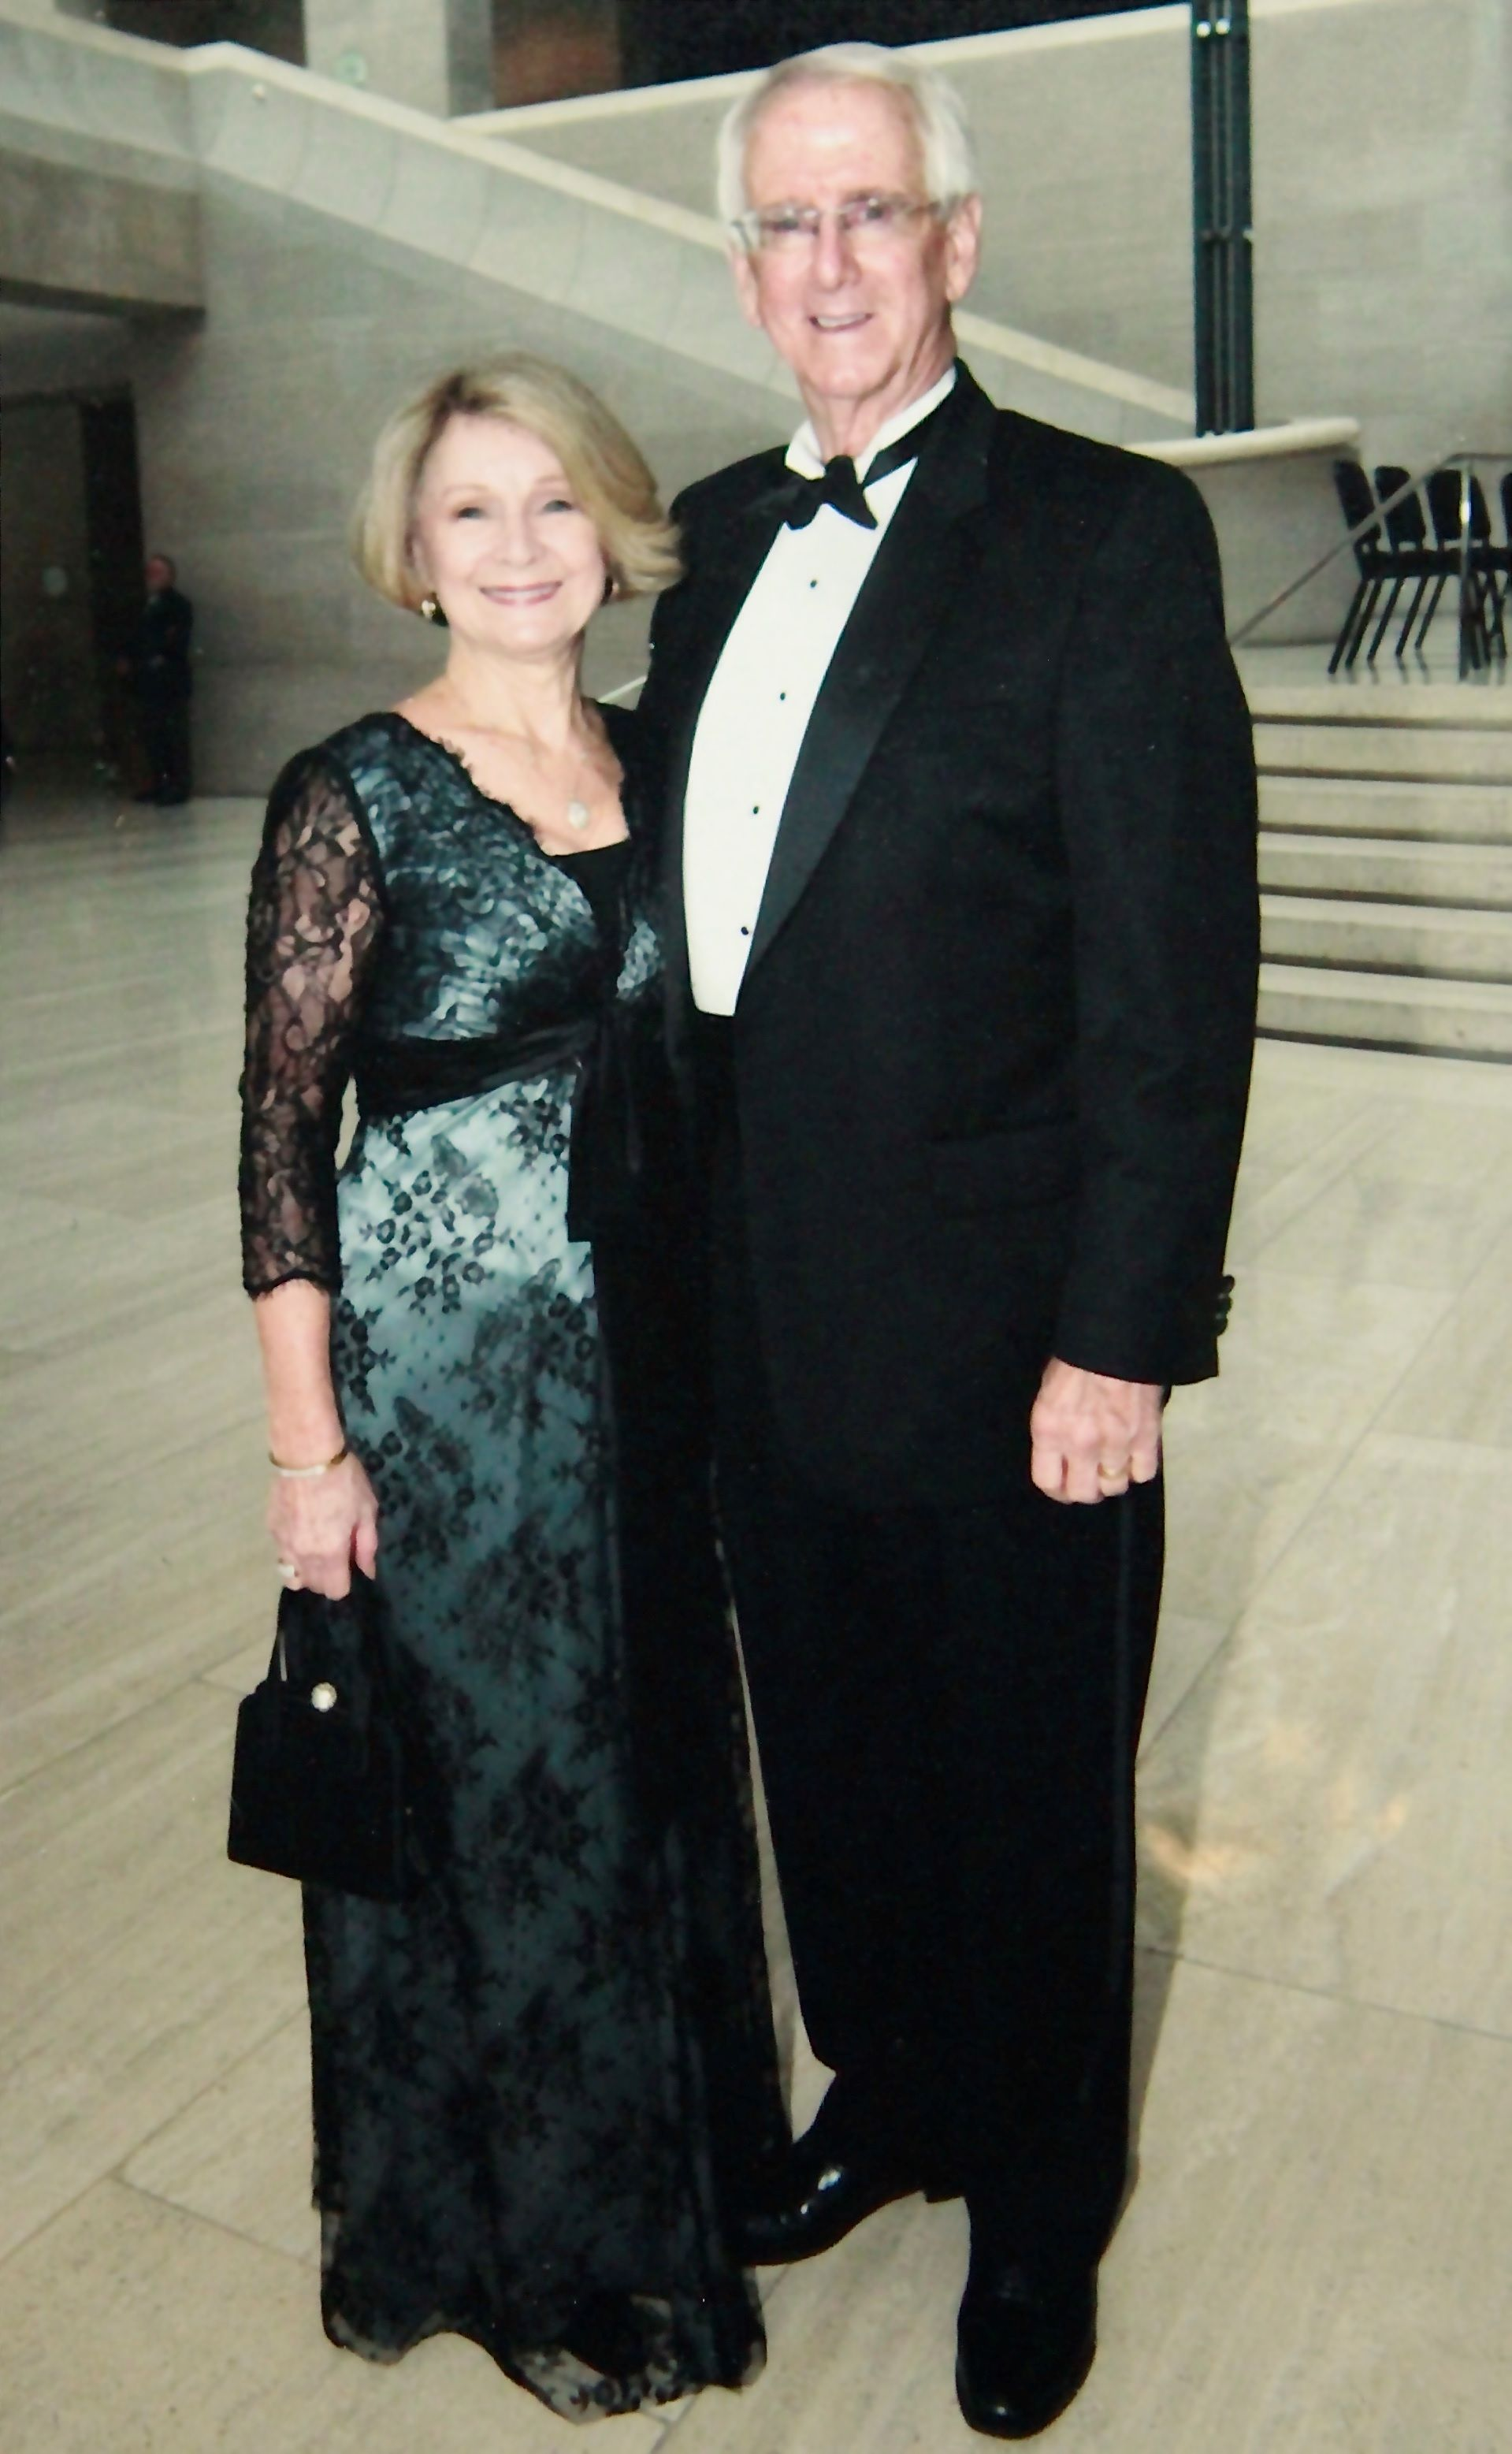 Susie and Jerry Wilson - Great article format for announcing a large gift.